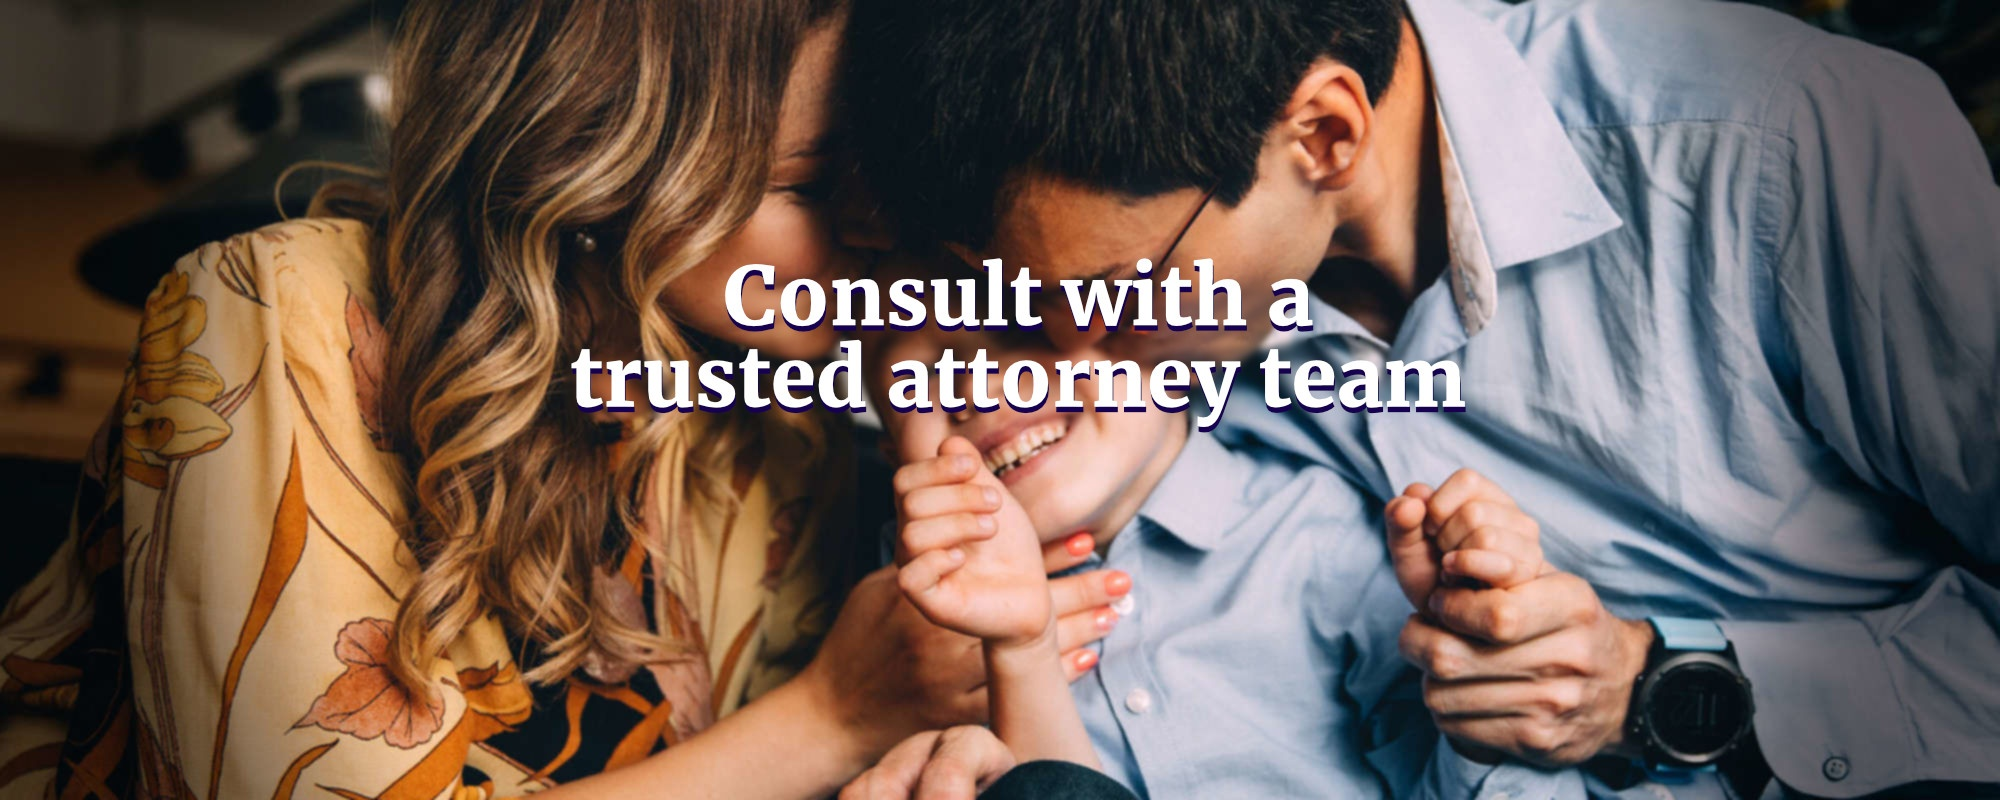 Trusted Attorney Team